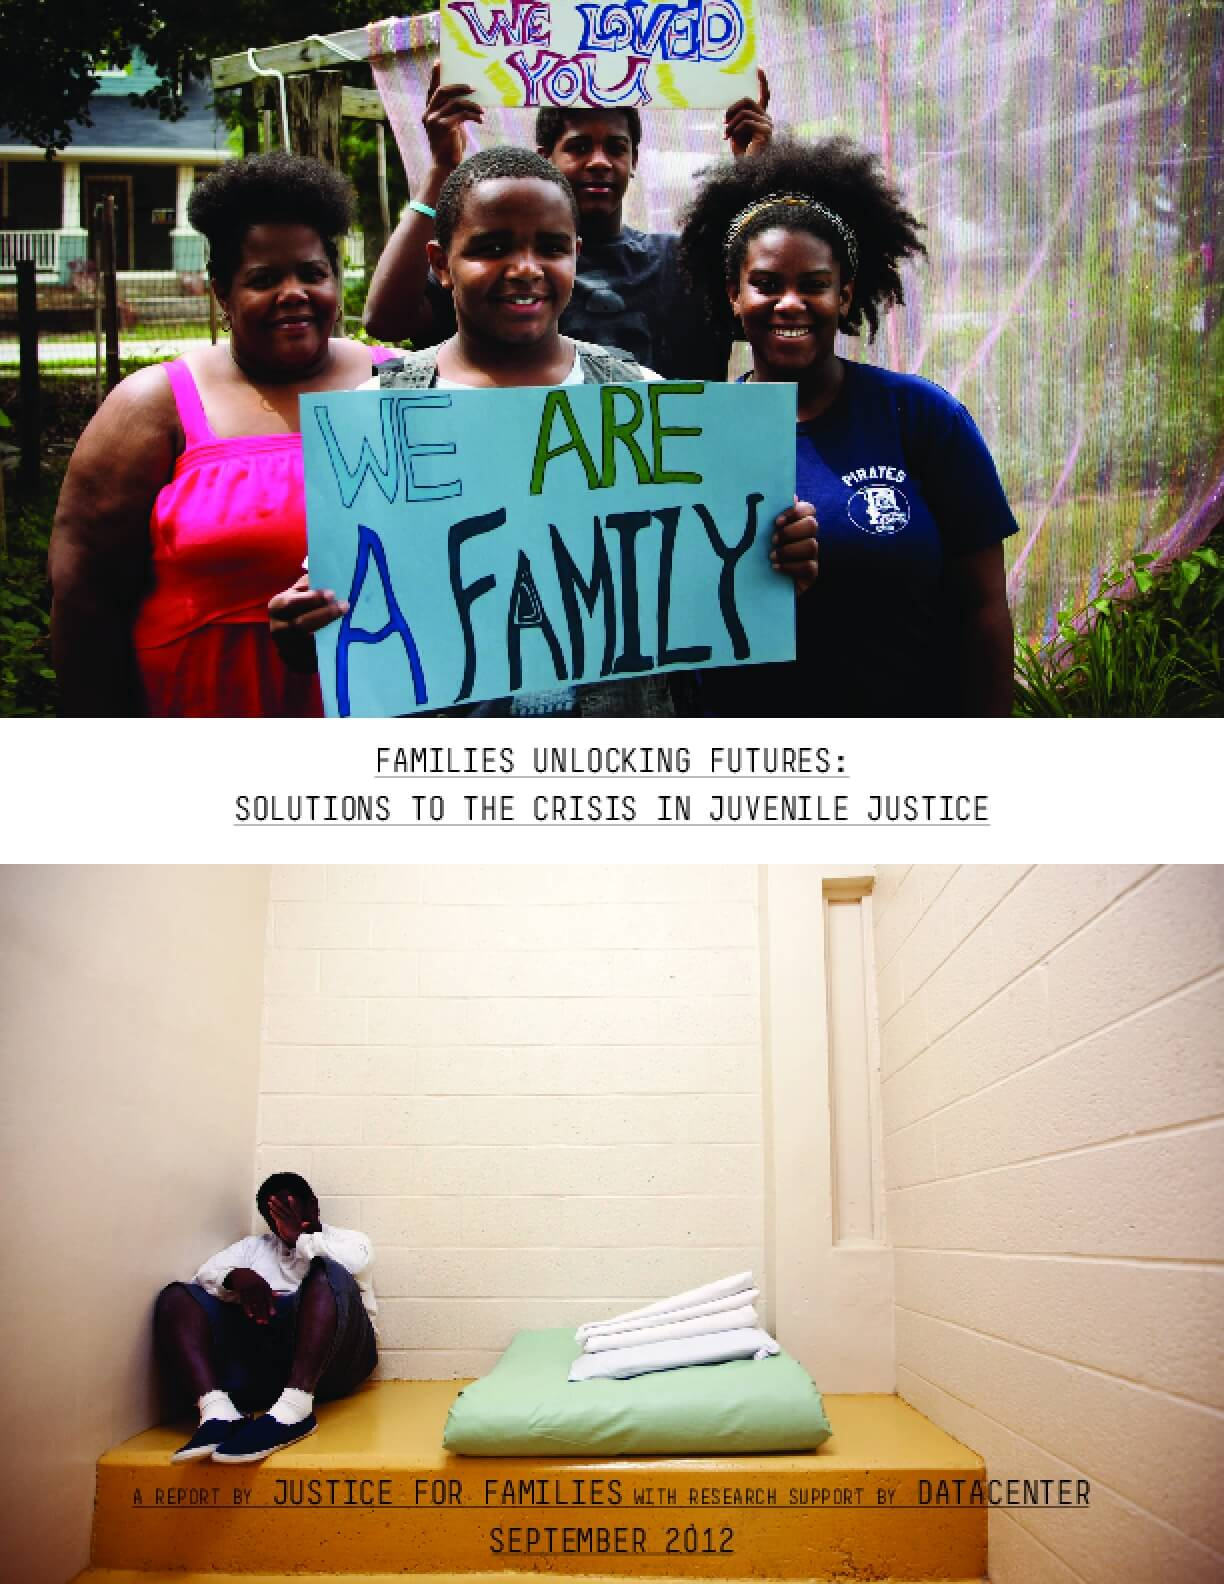 Families Unlocking Futures: Solutions to the Crisis in Juvenile Justice